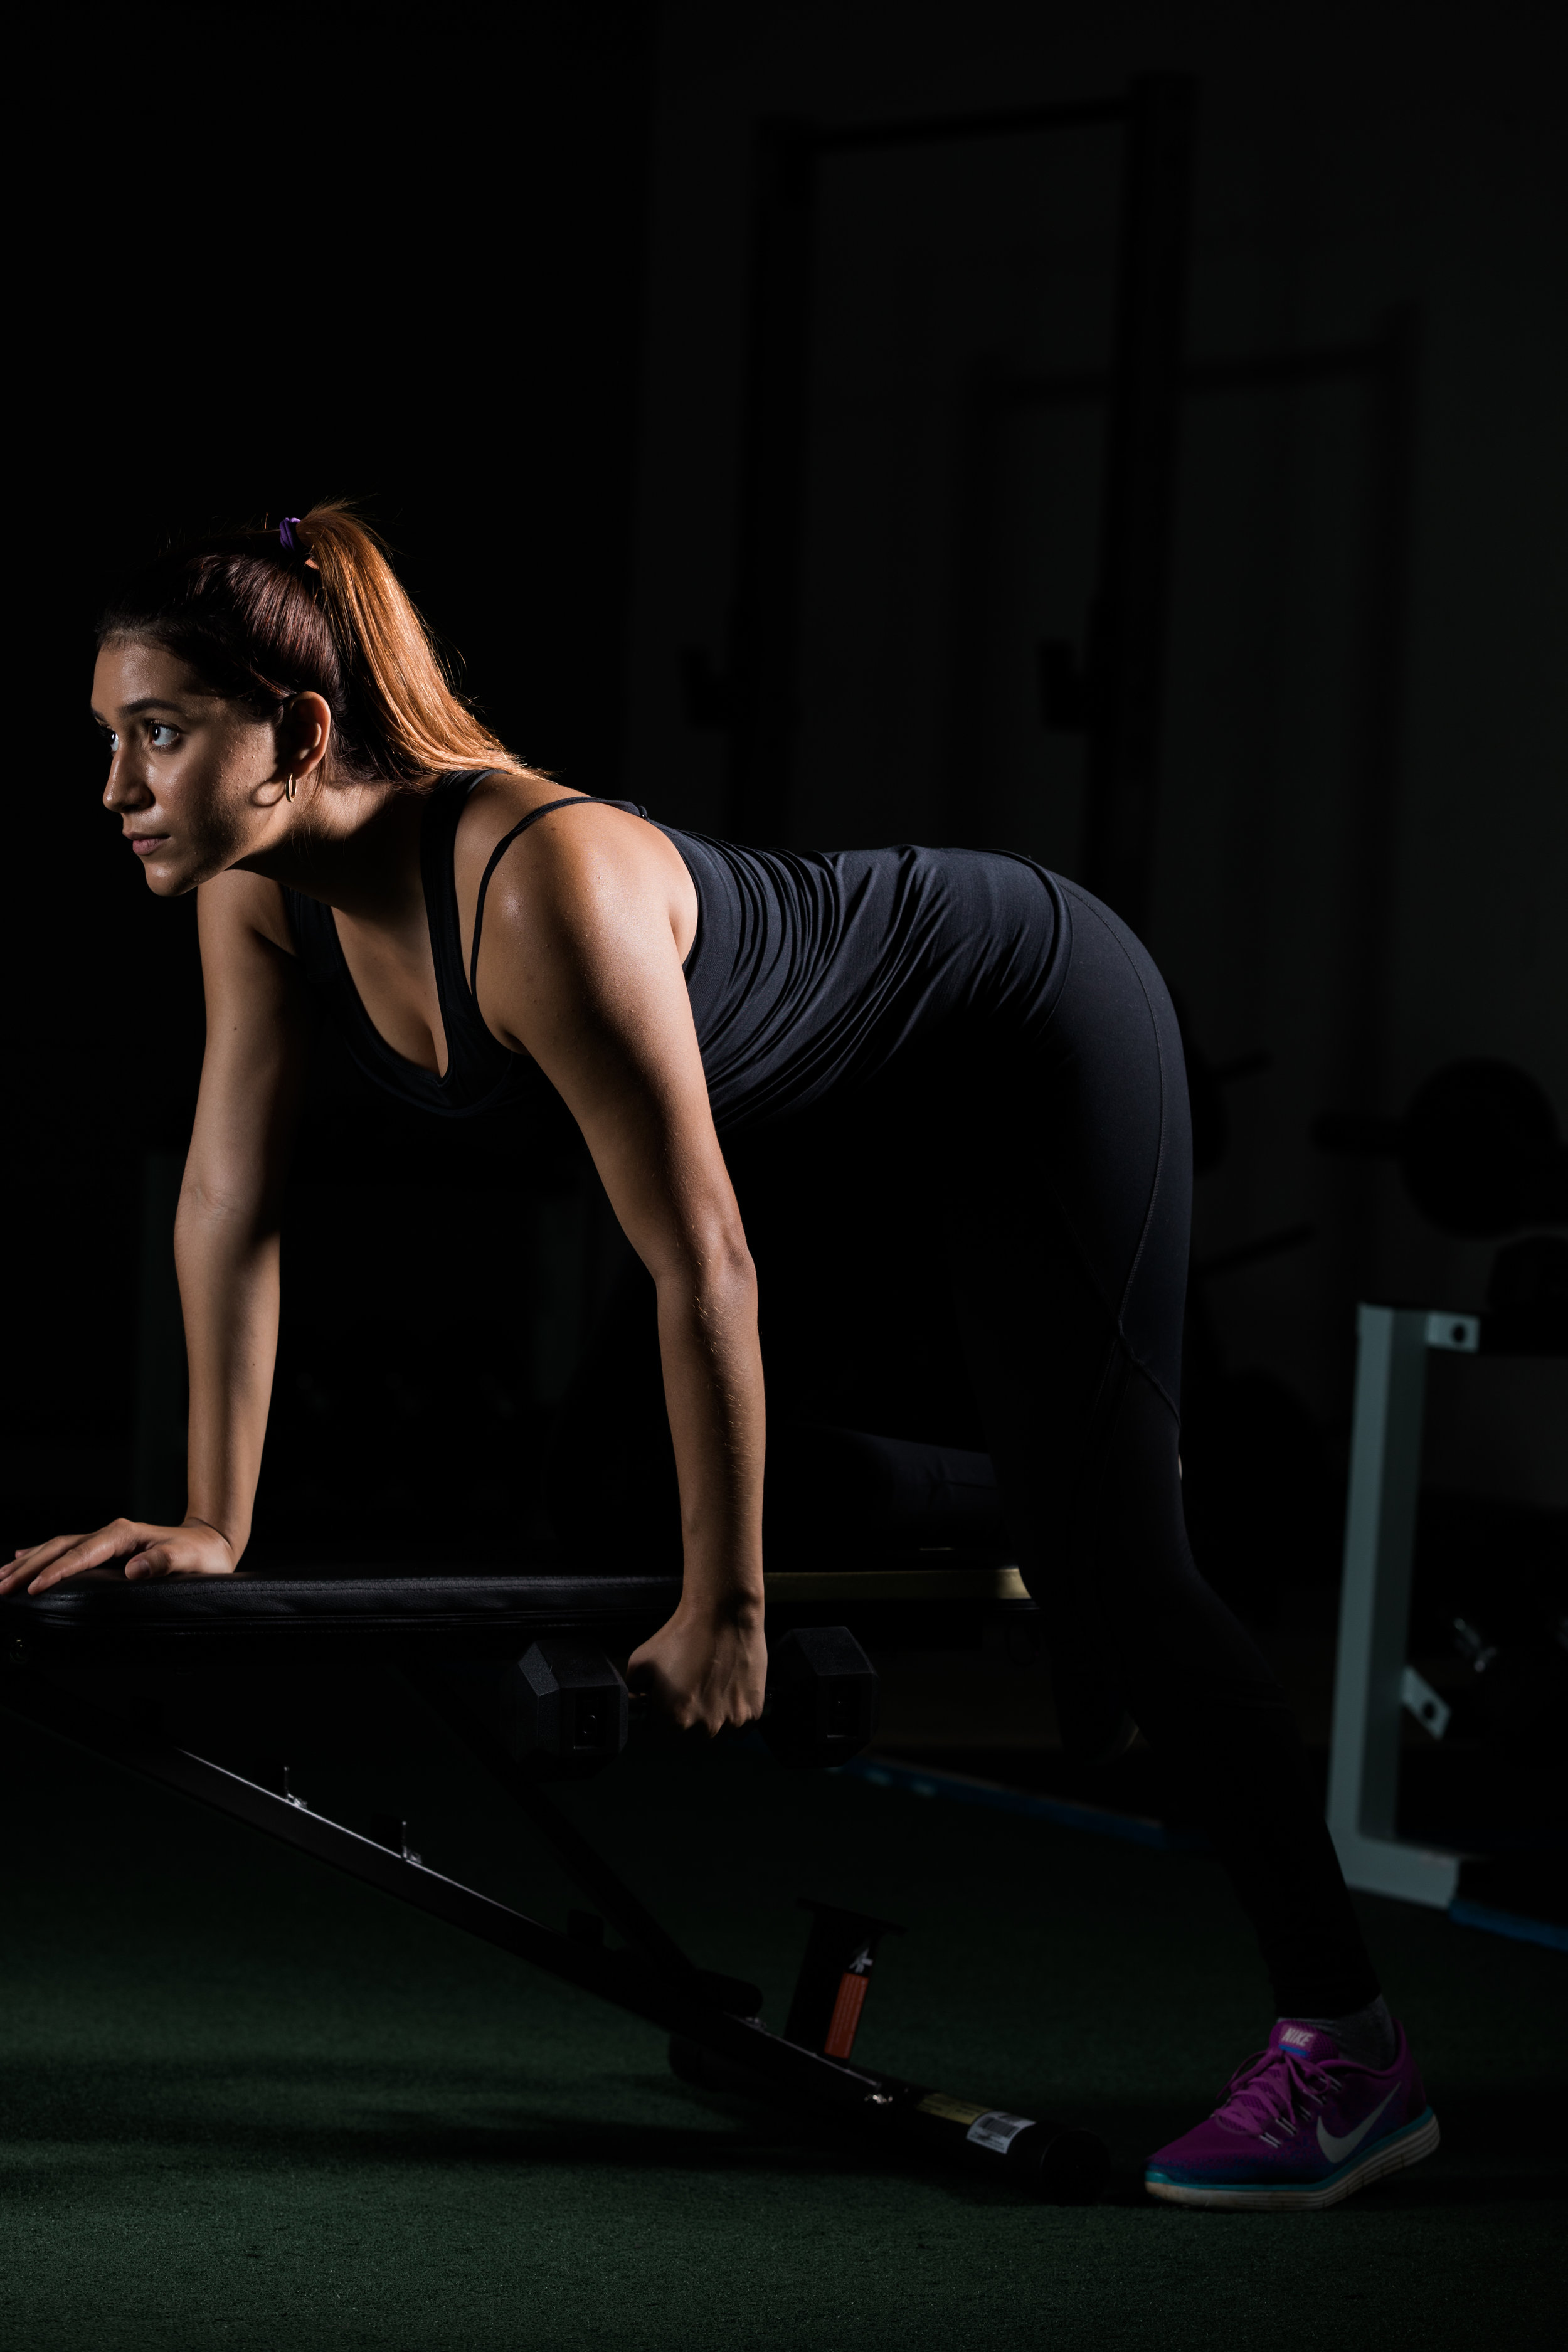 Personal Training Packages - 5 Sessions   No Contractual Commitment  Features: Use Sessions Anytime Up to 12 Months After Purchase Date, Access to App Reservation, Fitmetrix Heart Rate Tracking, 1 Complimentary Nutrition Coaching Session (30 Minutes)